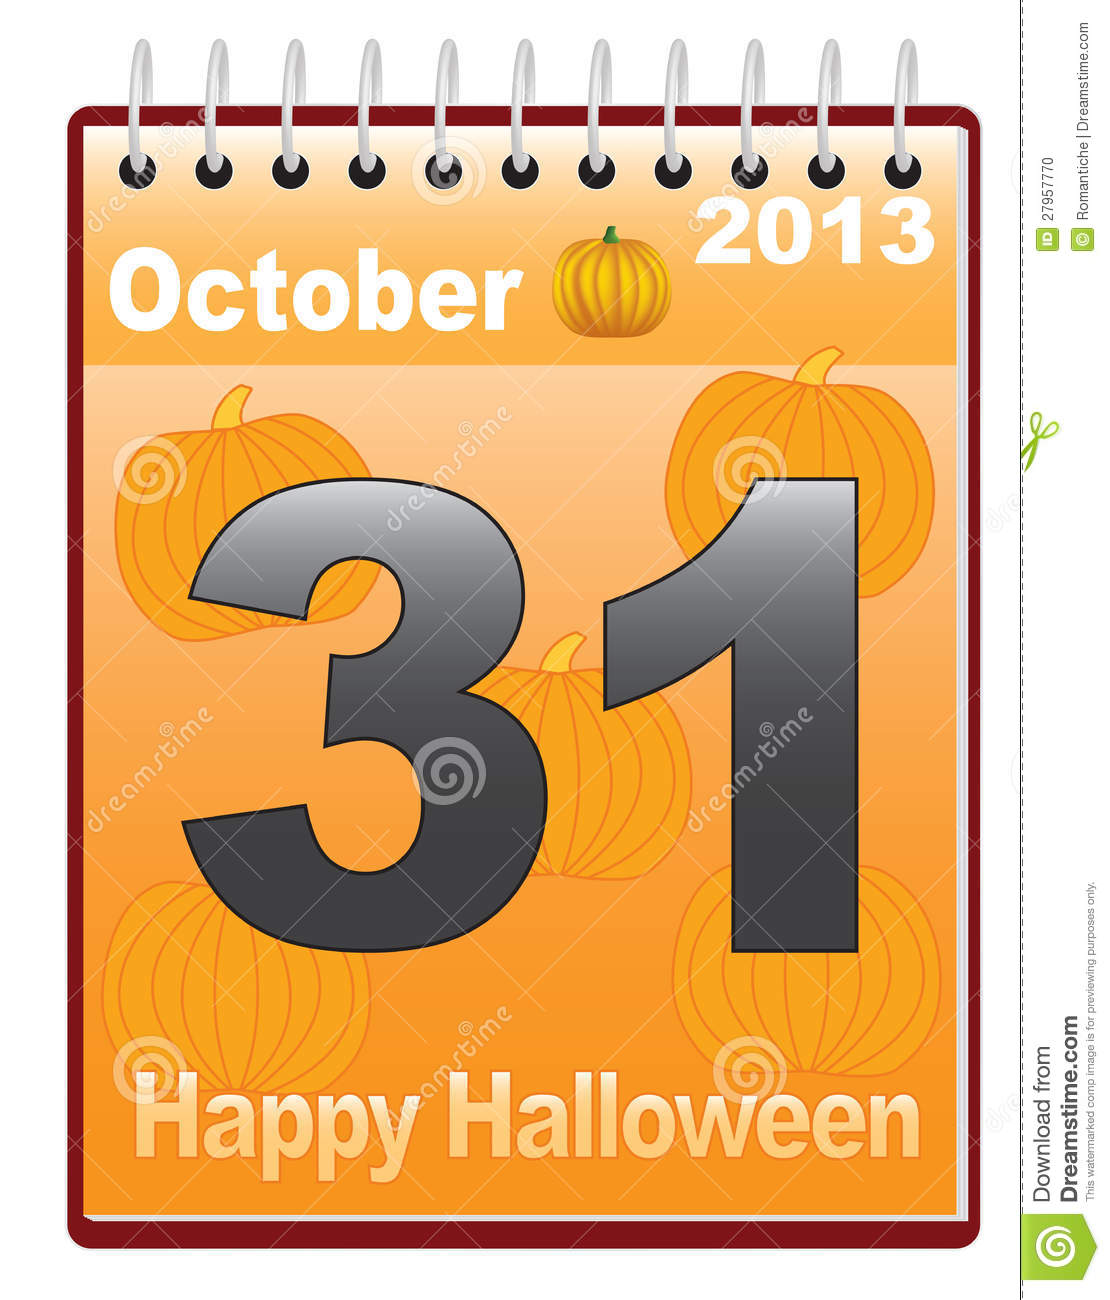 Halloween is celebrated yearly on October 31, the eve of the Western ...